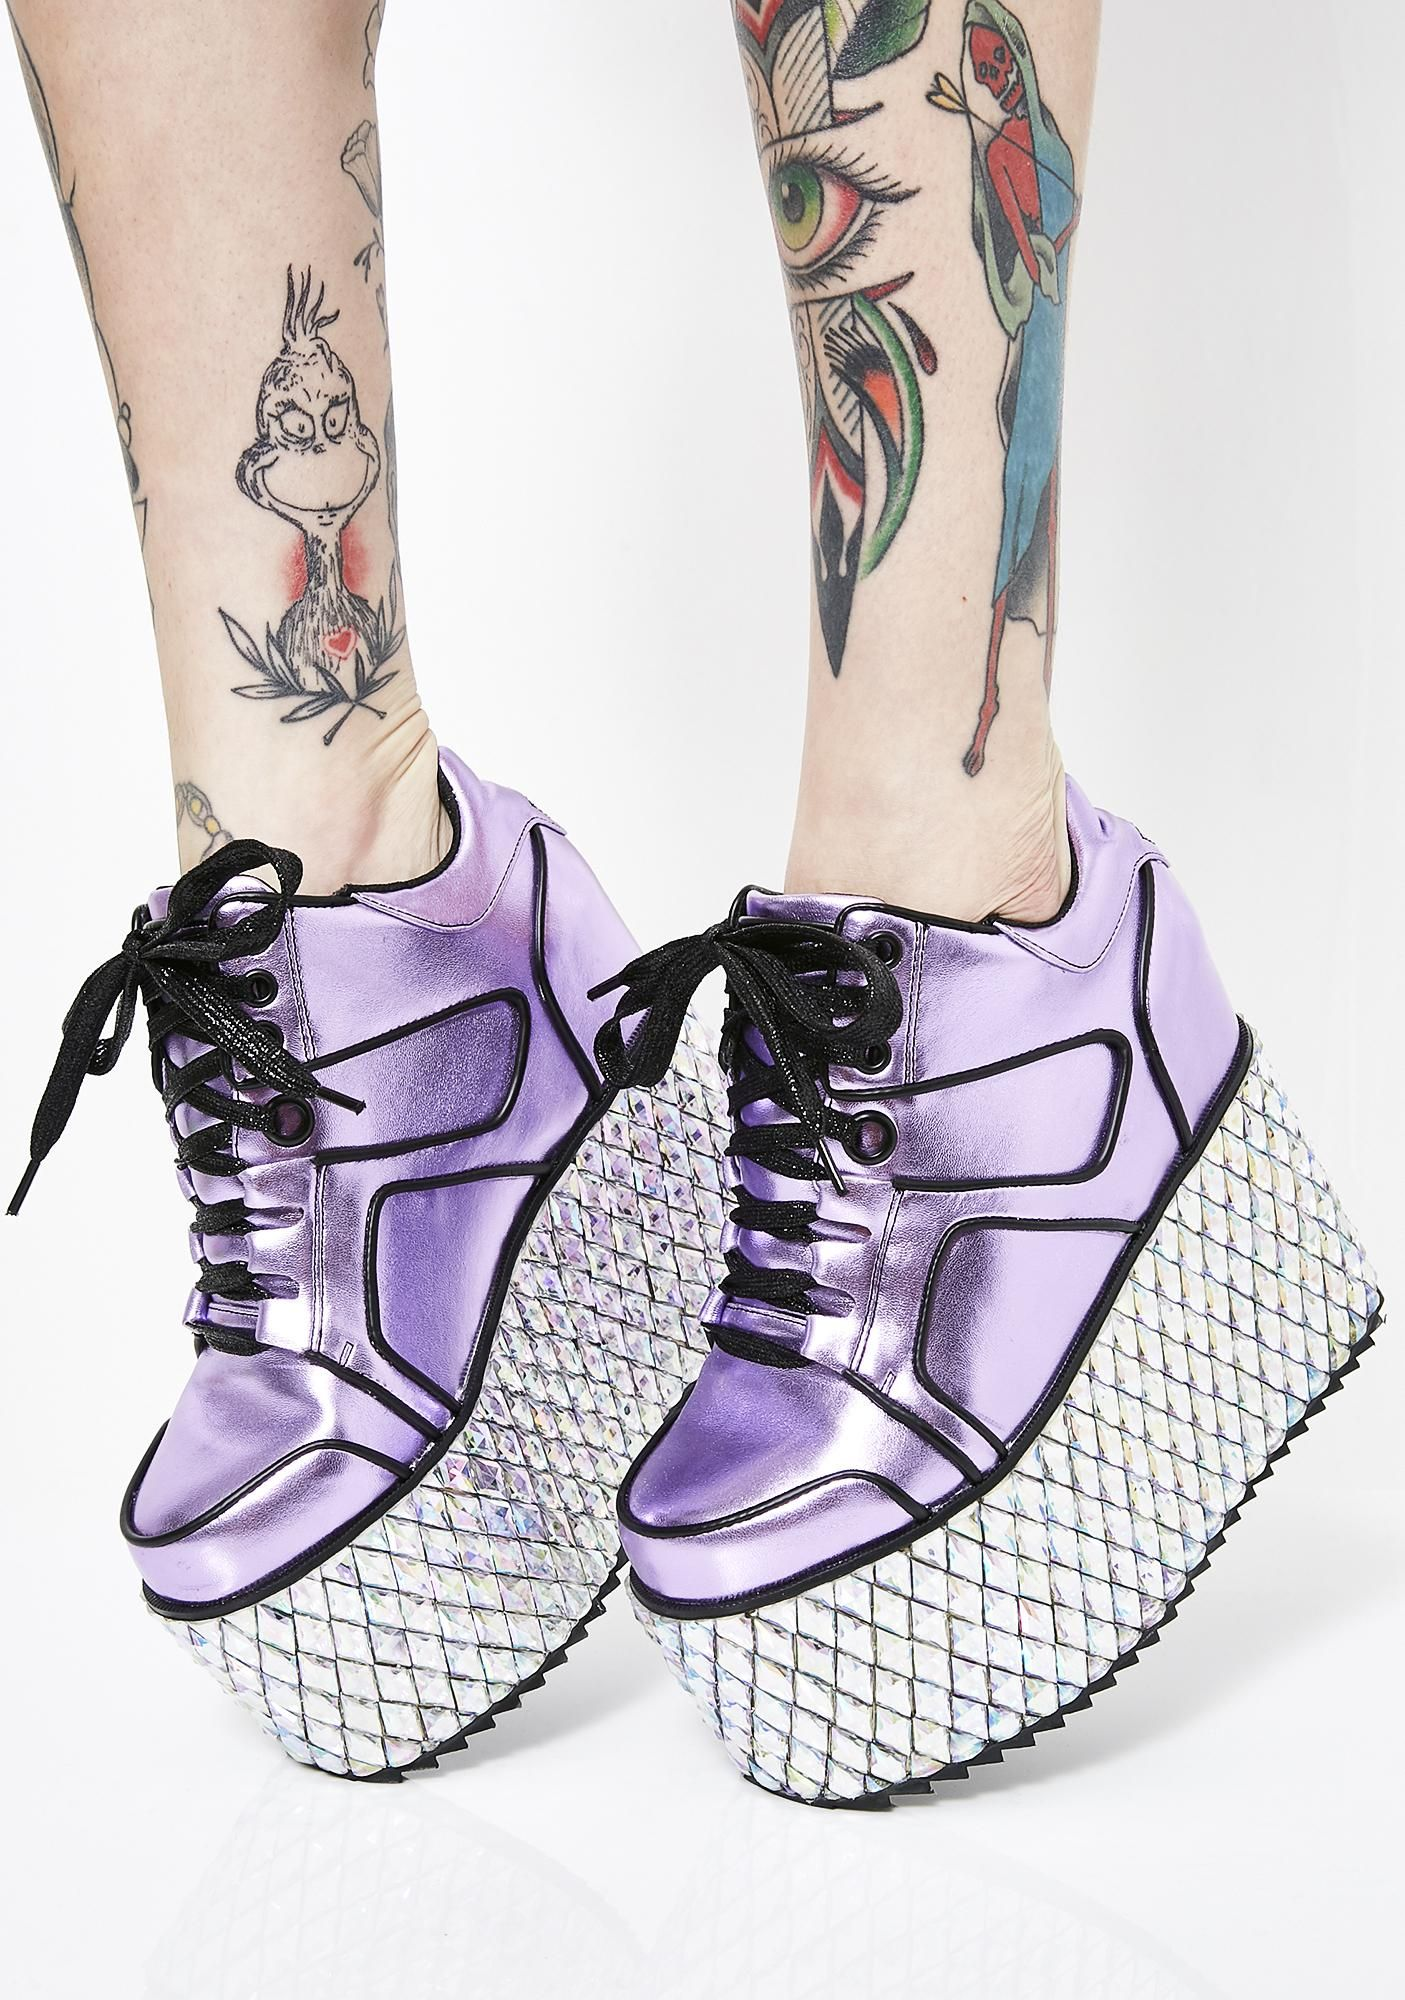 76a1f4b5da1 GLAMTRONIC PLATFORM SNEAKERS  clubexx  dollskill  sneakers  platforms   shoes  jewels